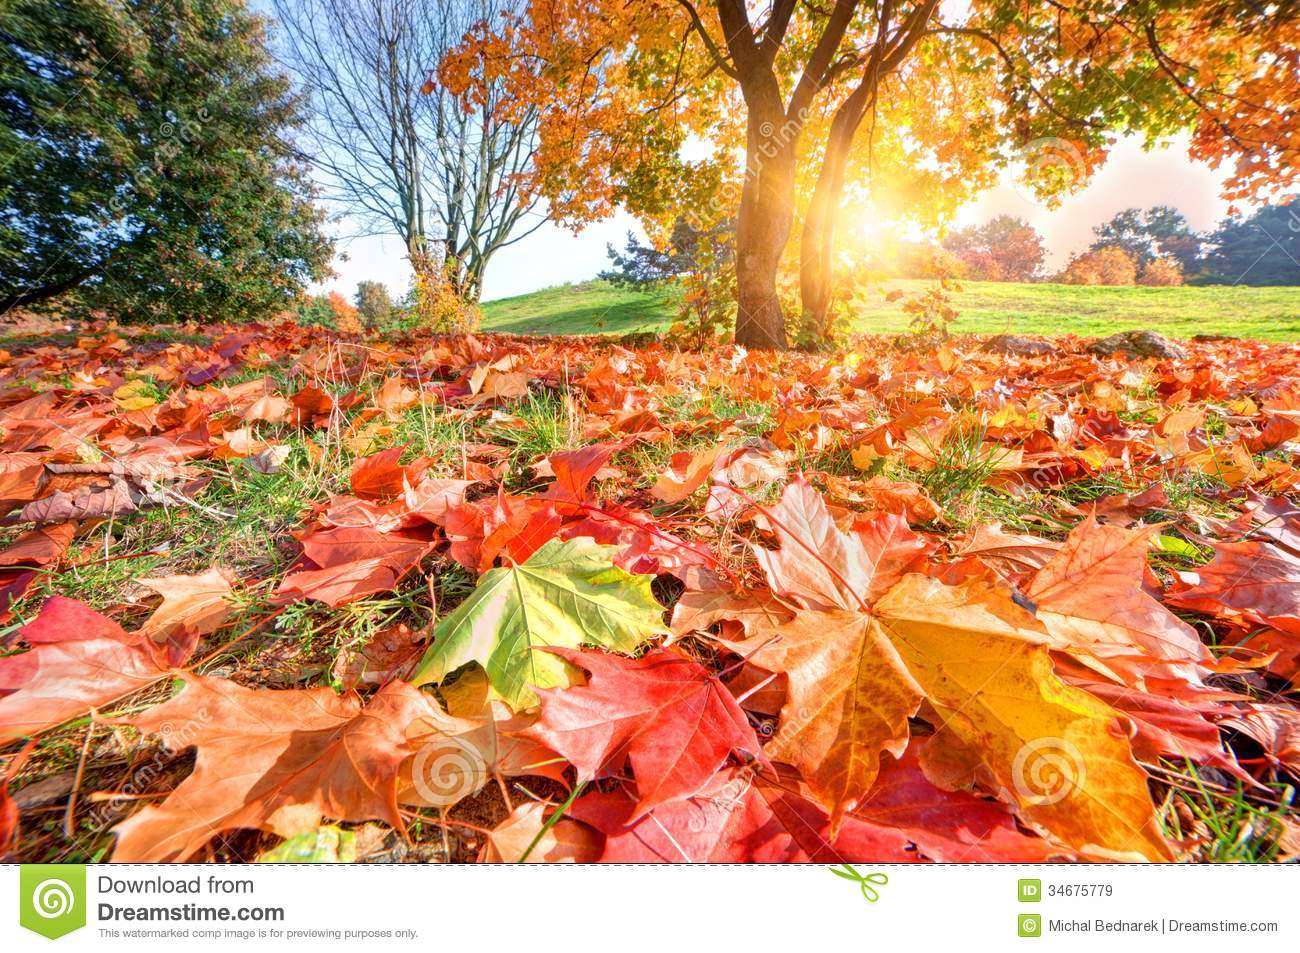 Fall Flowers And Pumpkins Wallpaper Autumn Fall Landscape In Park Royalty Free Stock Images